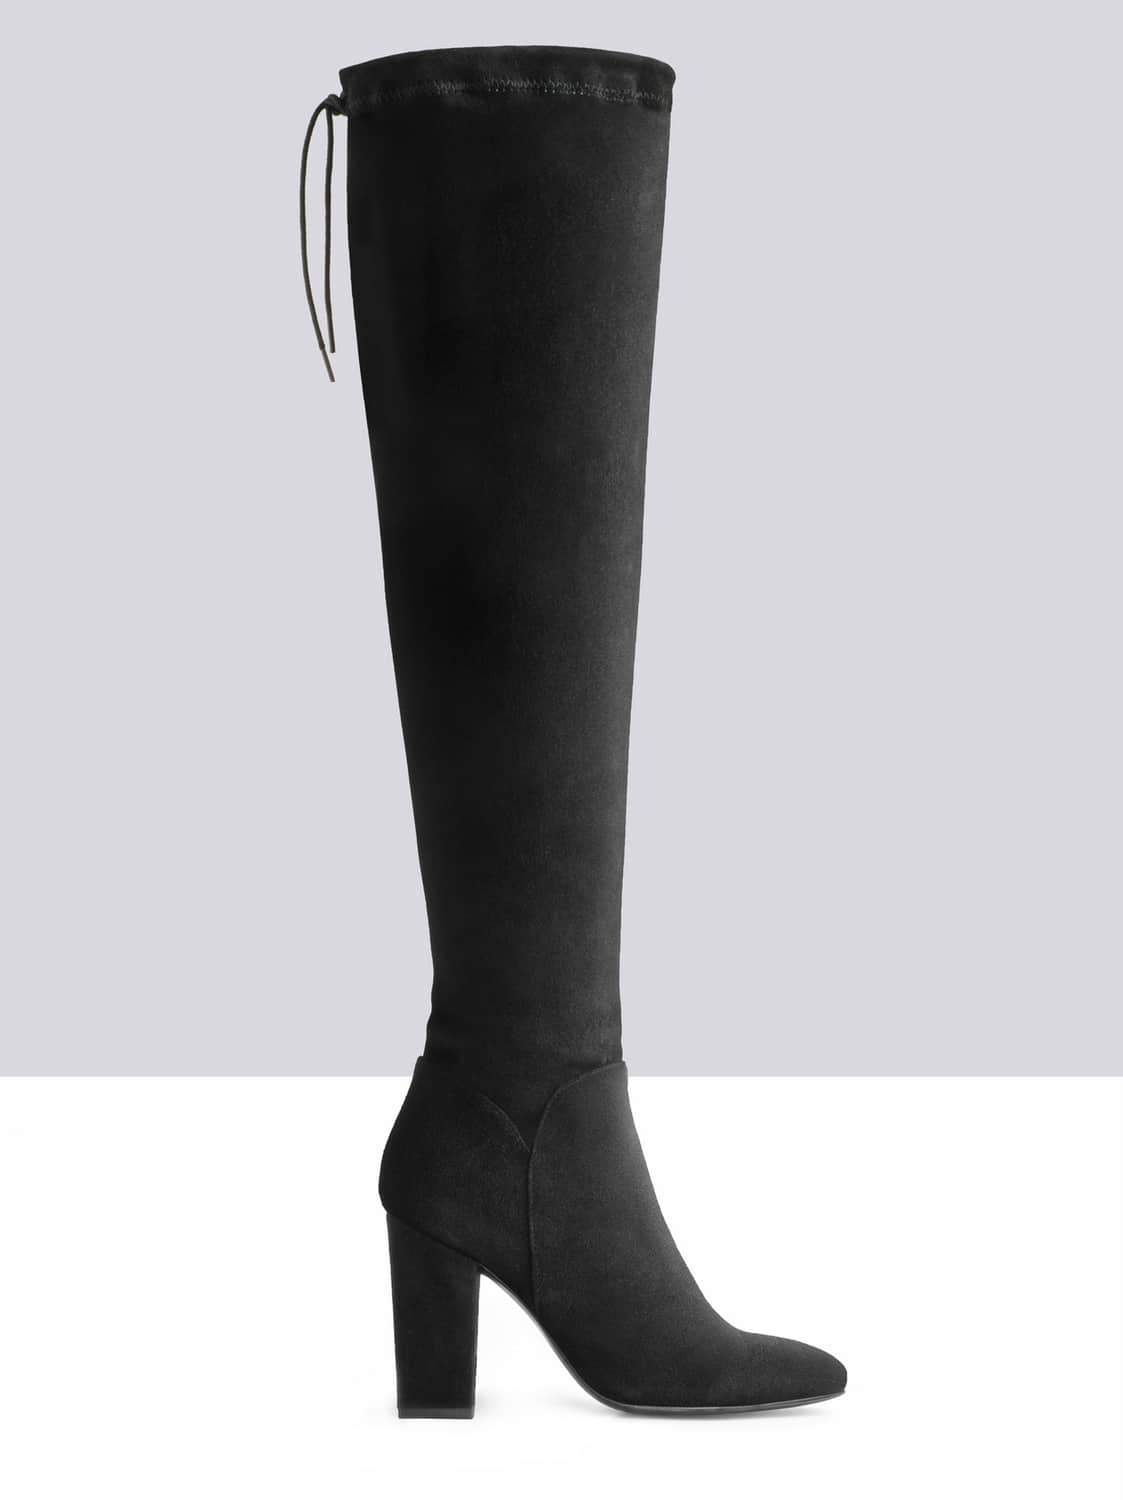 5 Must Have Wide Calf & Over the Knee Boots for Fall